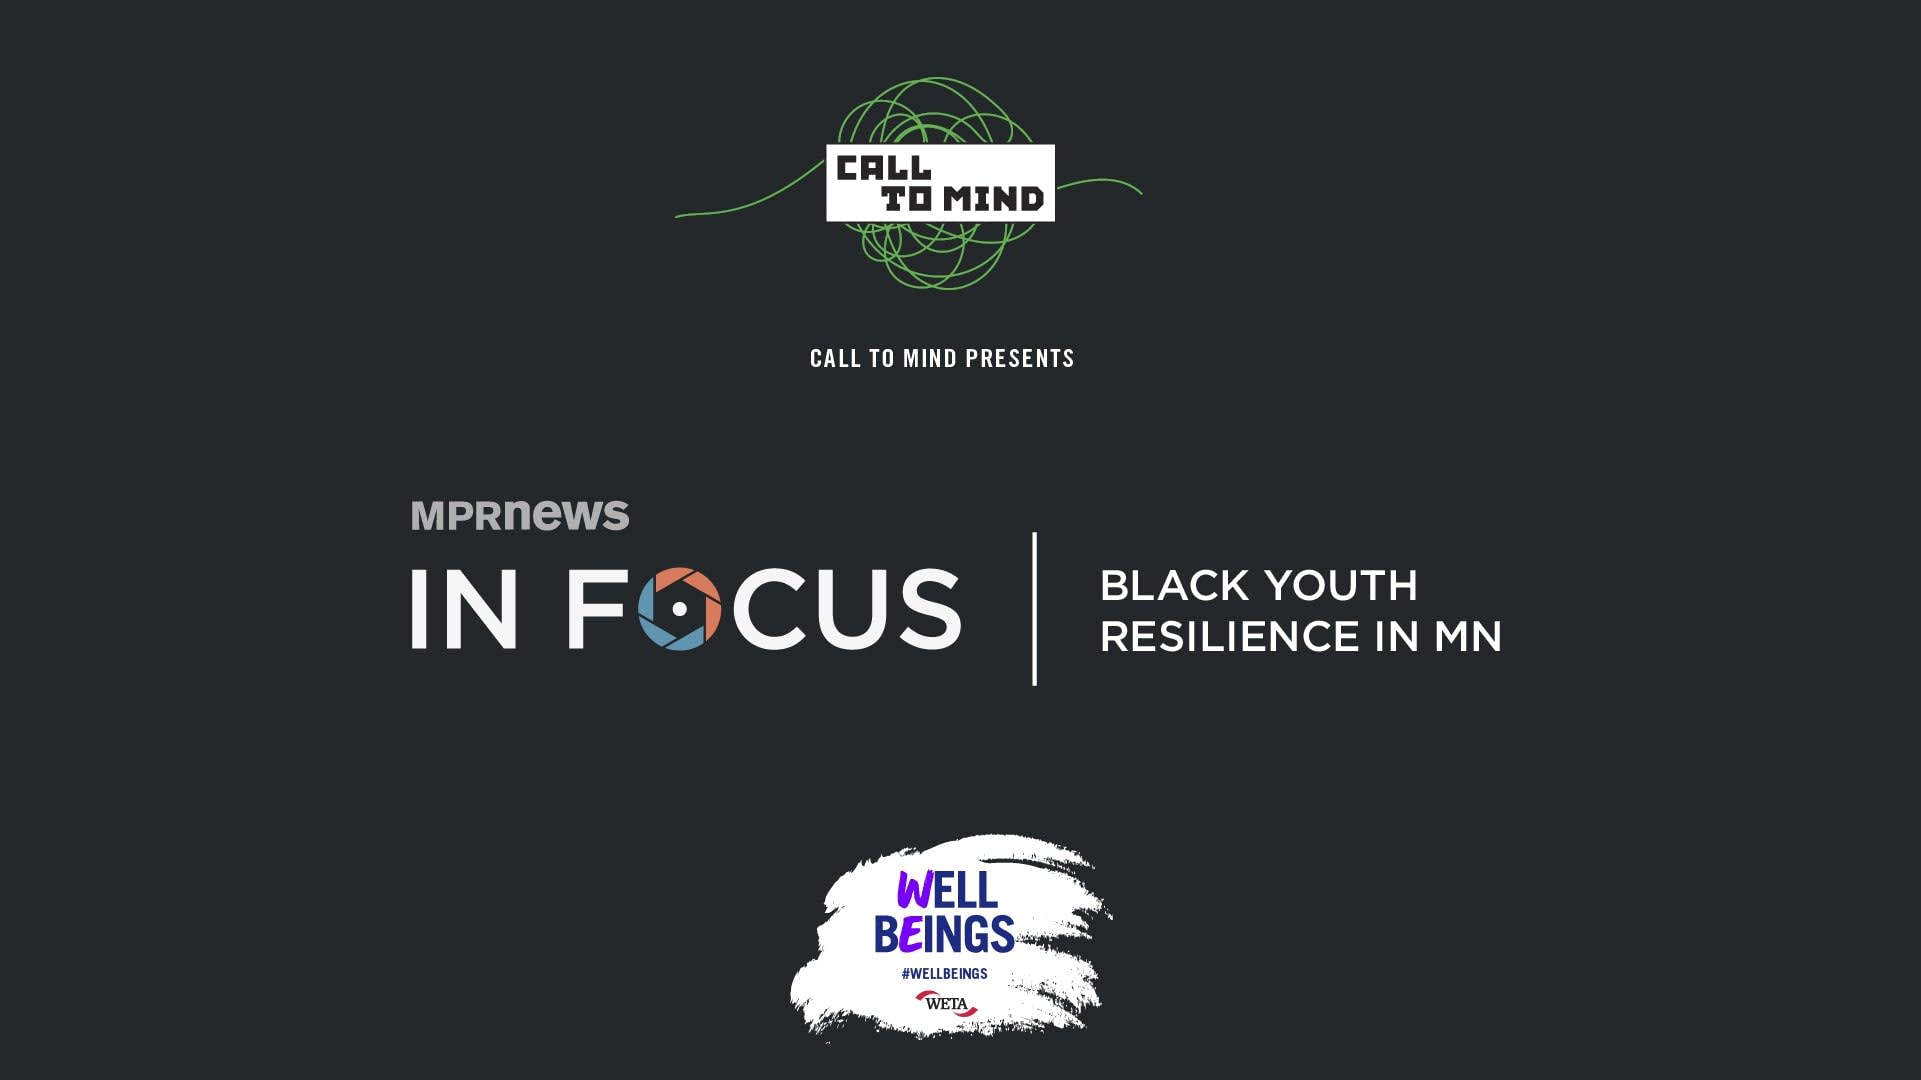 In Focus: Black Youth Resilience